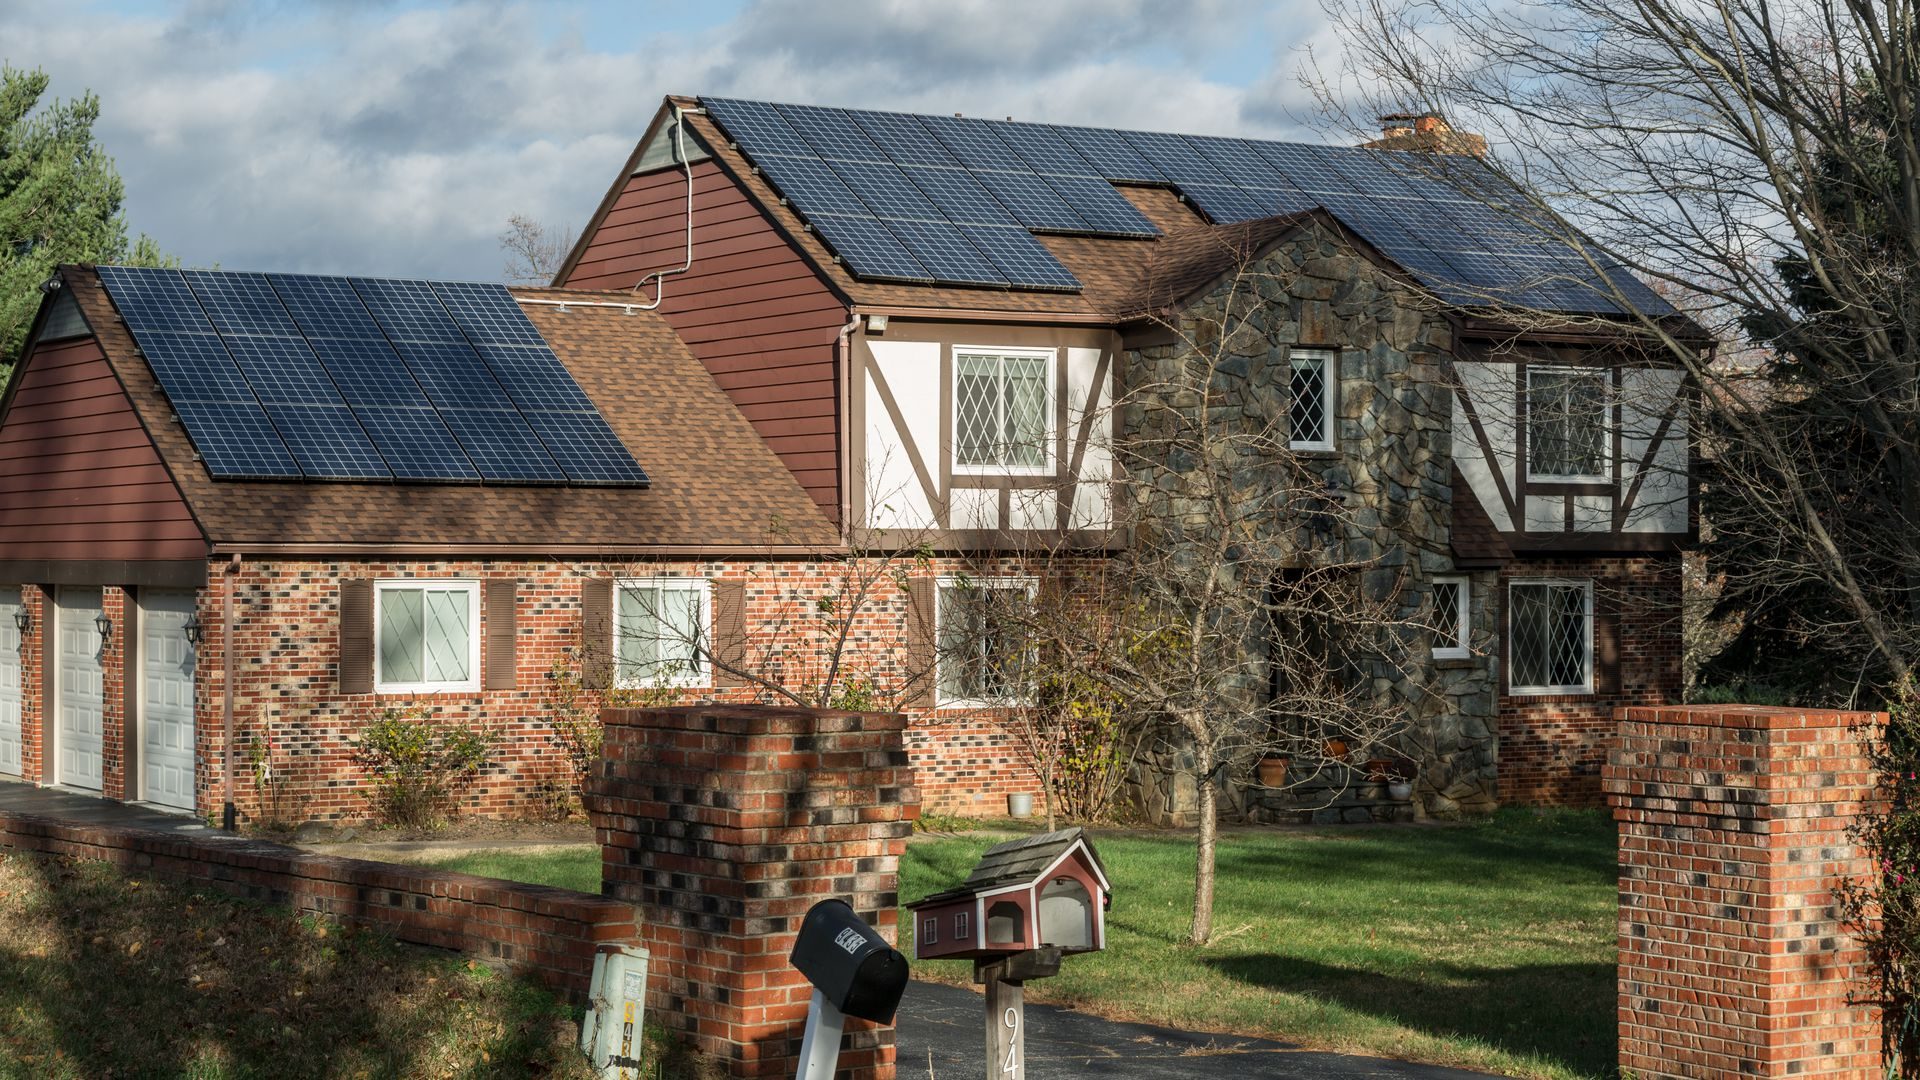 A house with solar panels built into the roof